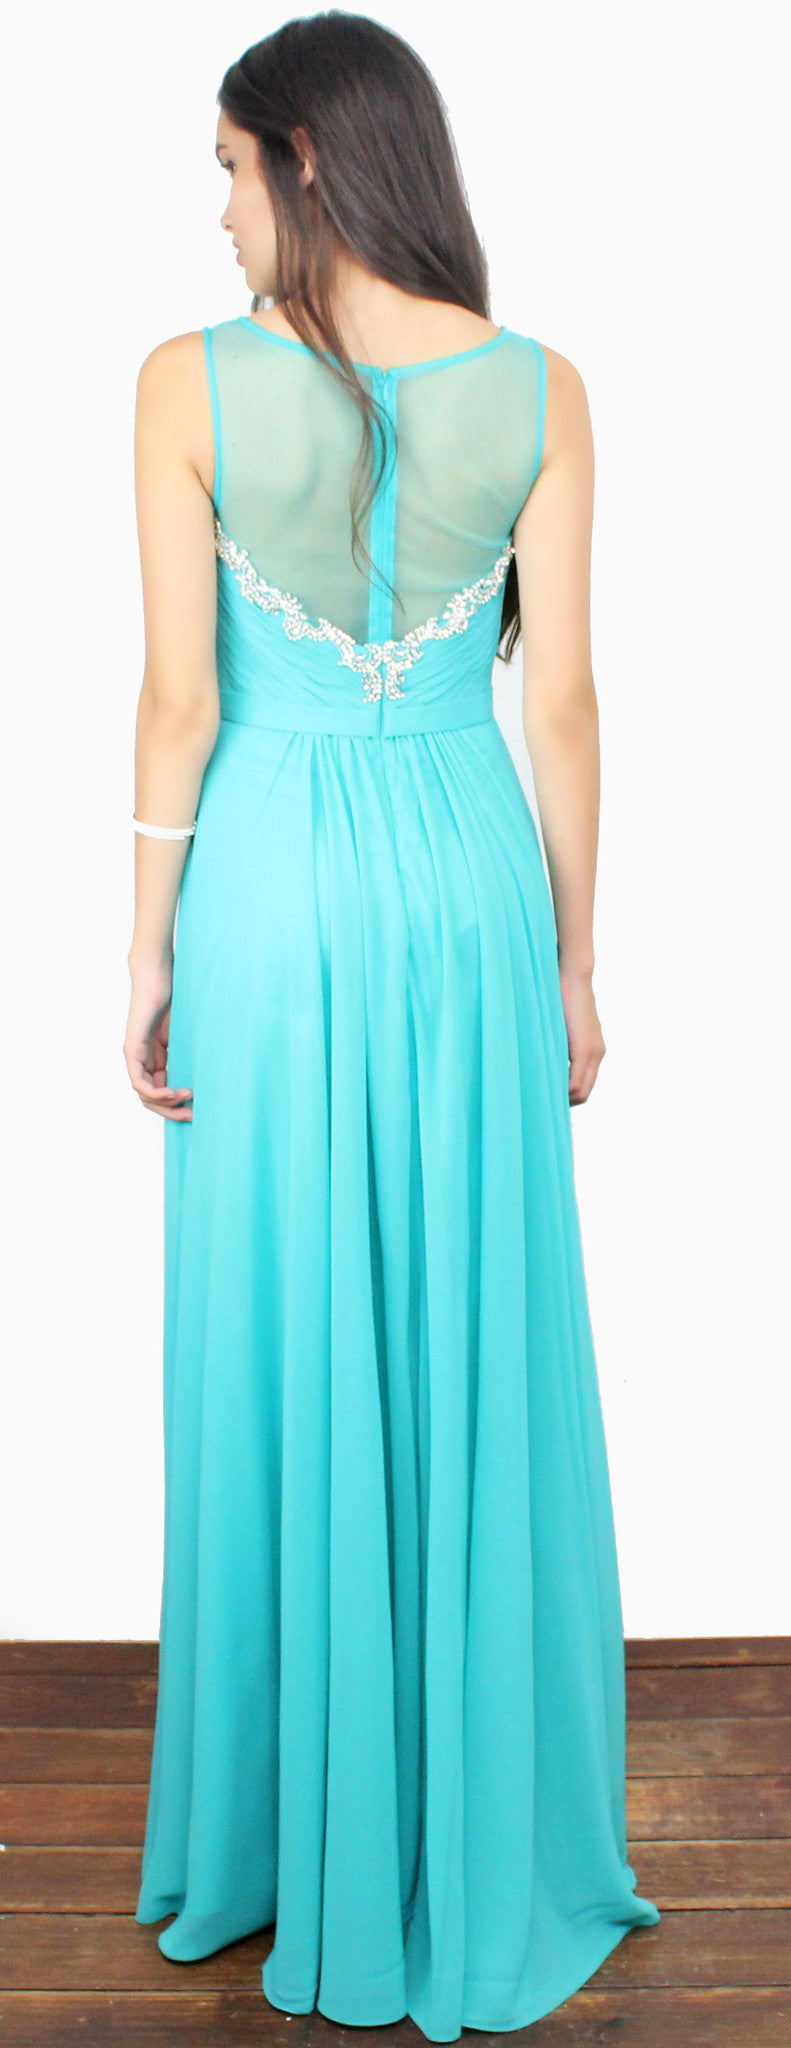 Everlasting Enchantment Teal Gown